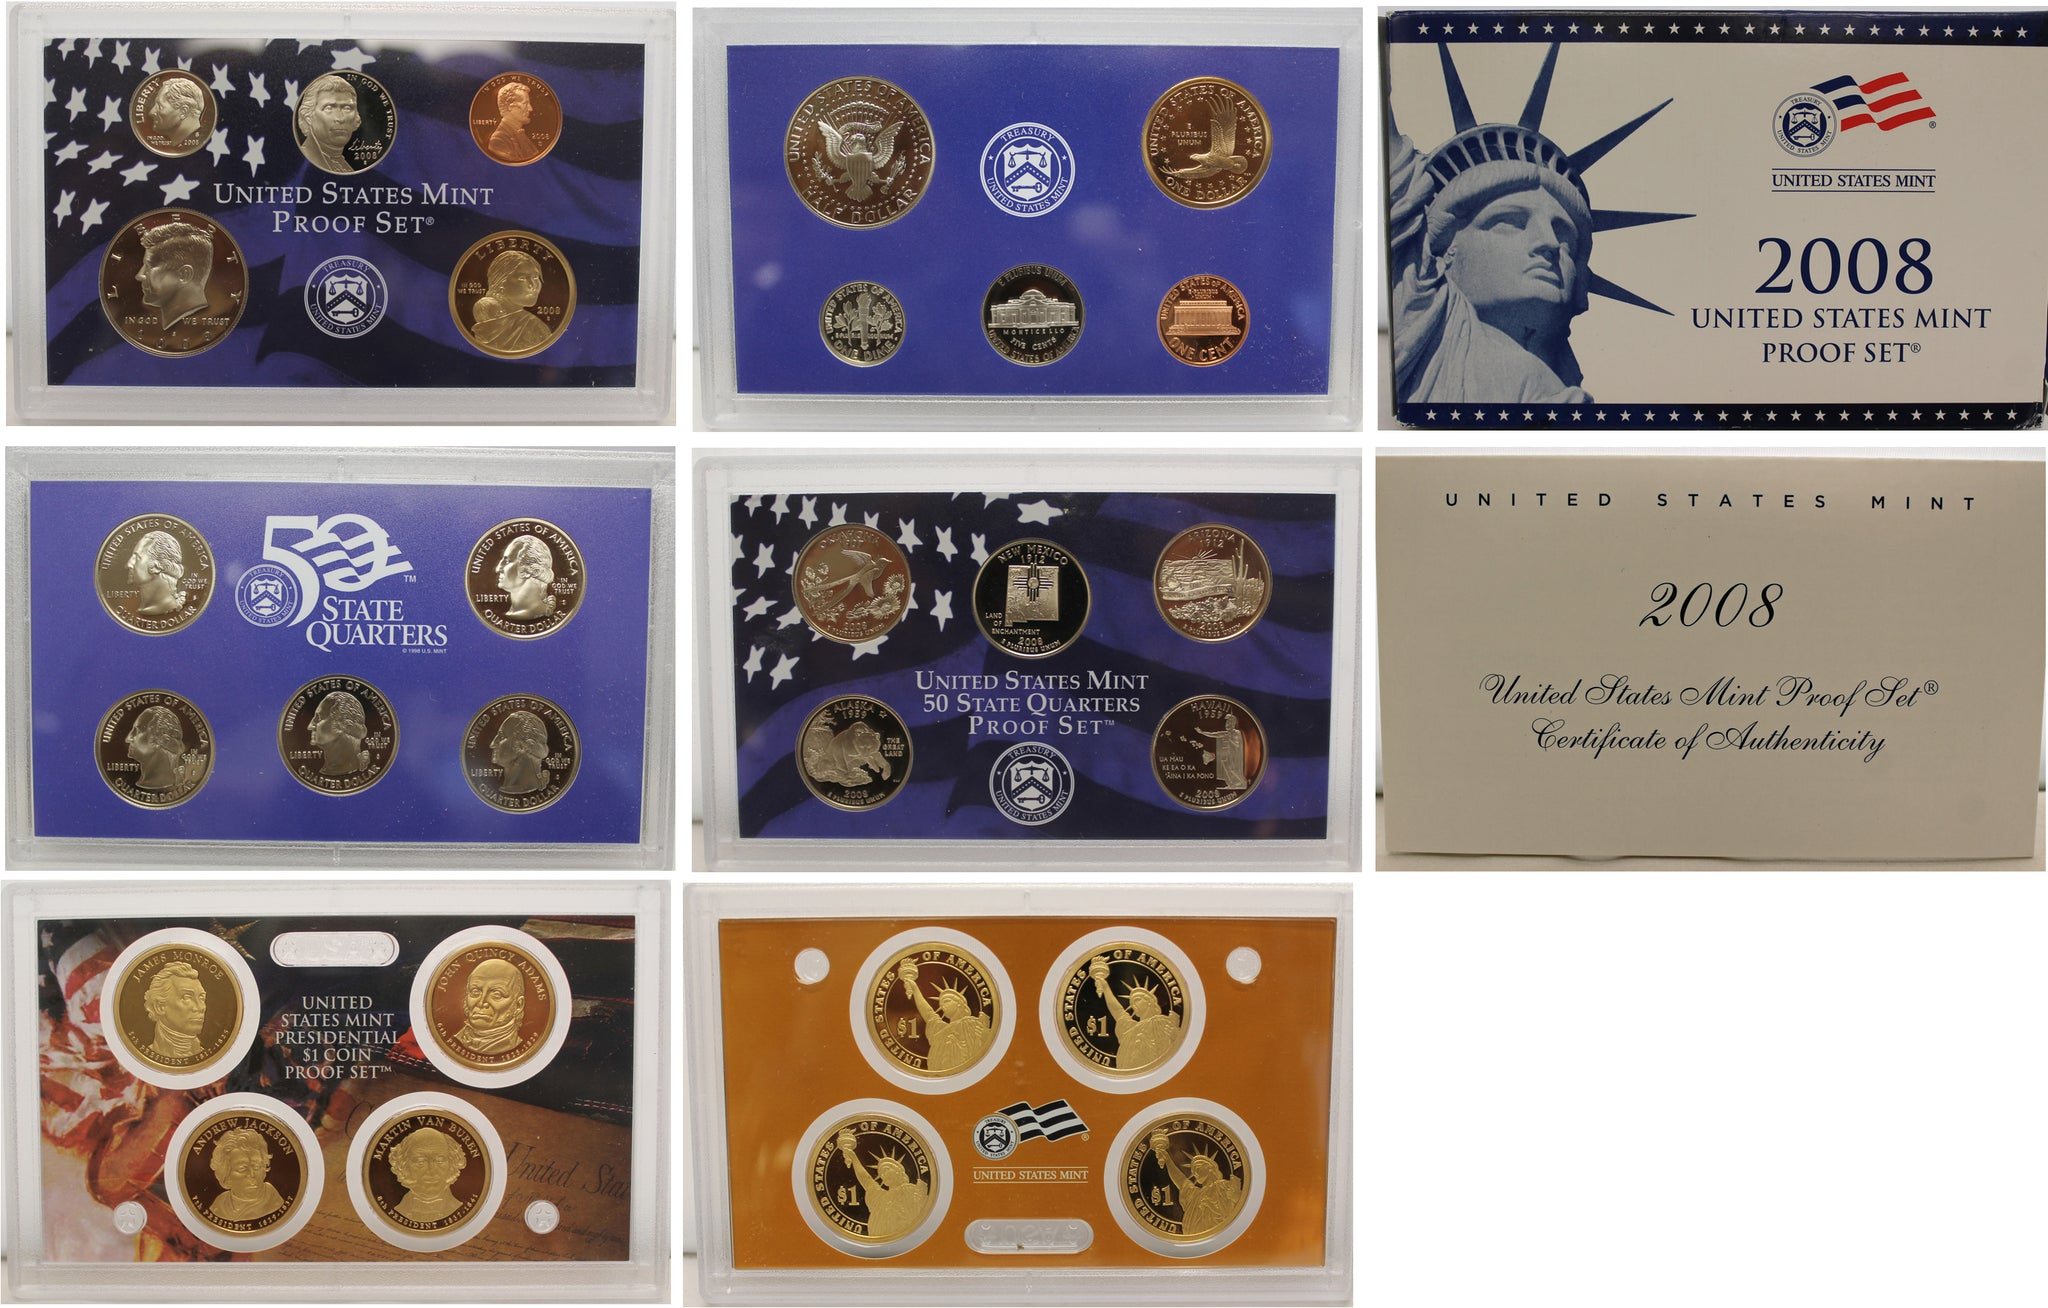 2008 Proof set 10 Pack CN-Clad Kennedy, Presidential Dollar, State quarters OGP 140 coins